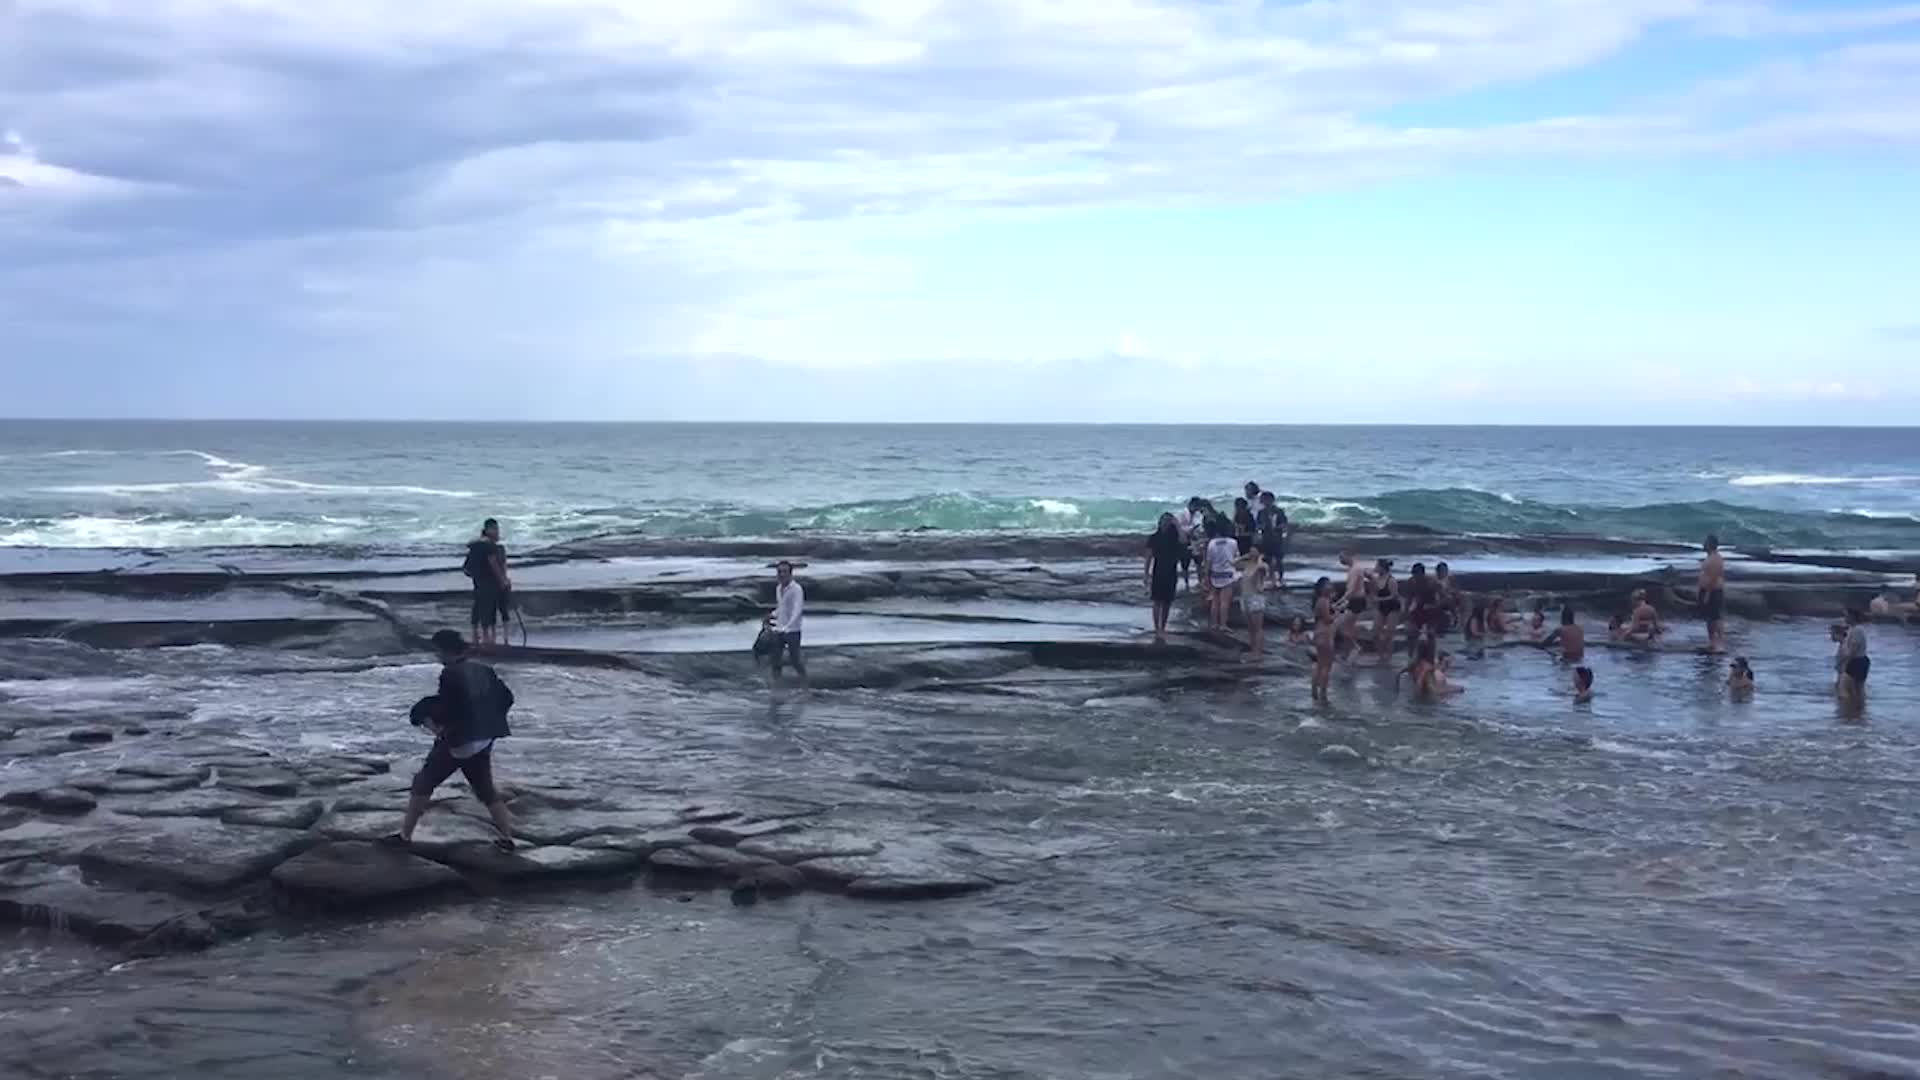 A huge wave caught the tourists on a beach in New South Wales, Australia by surprise.